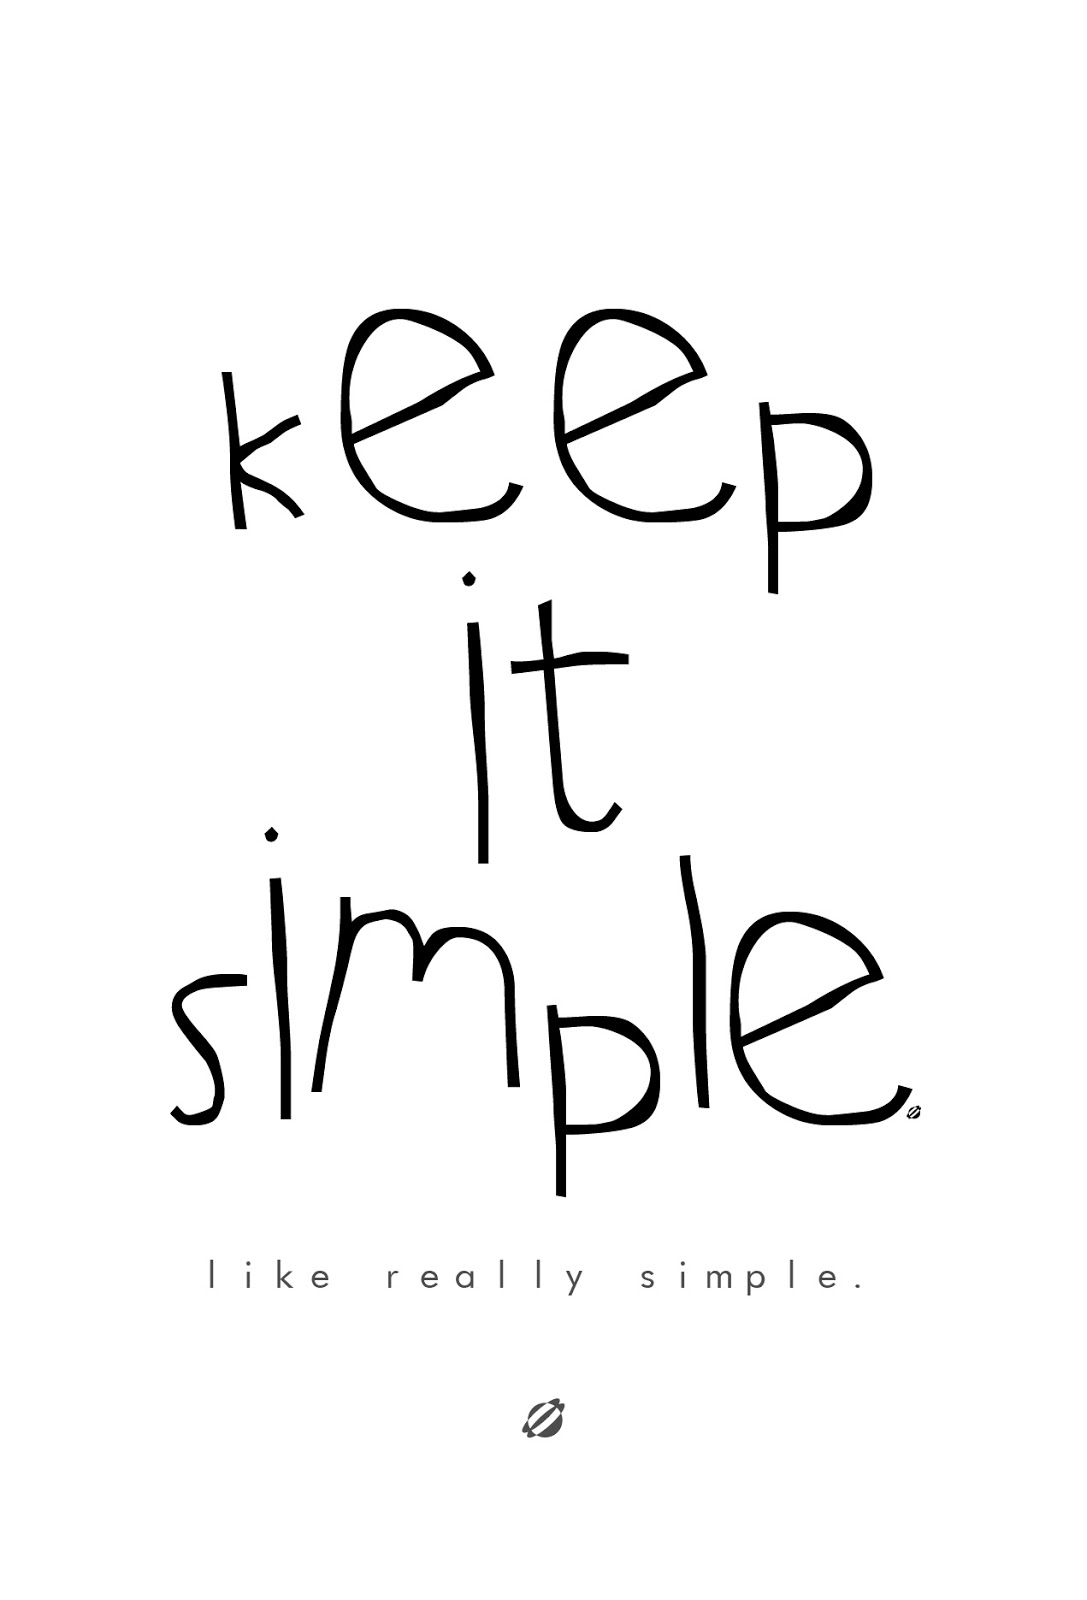 LostBumblebee ©2014 Keep it Simple Free Printable